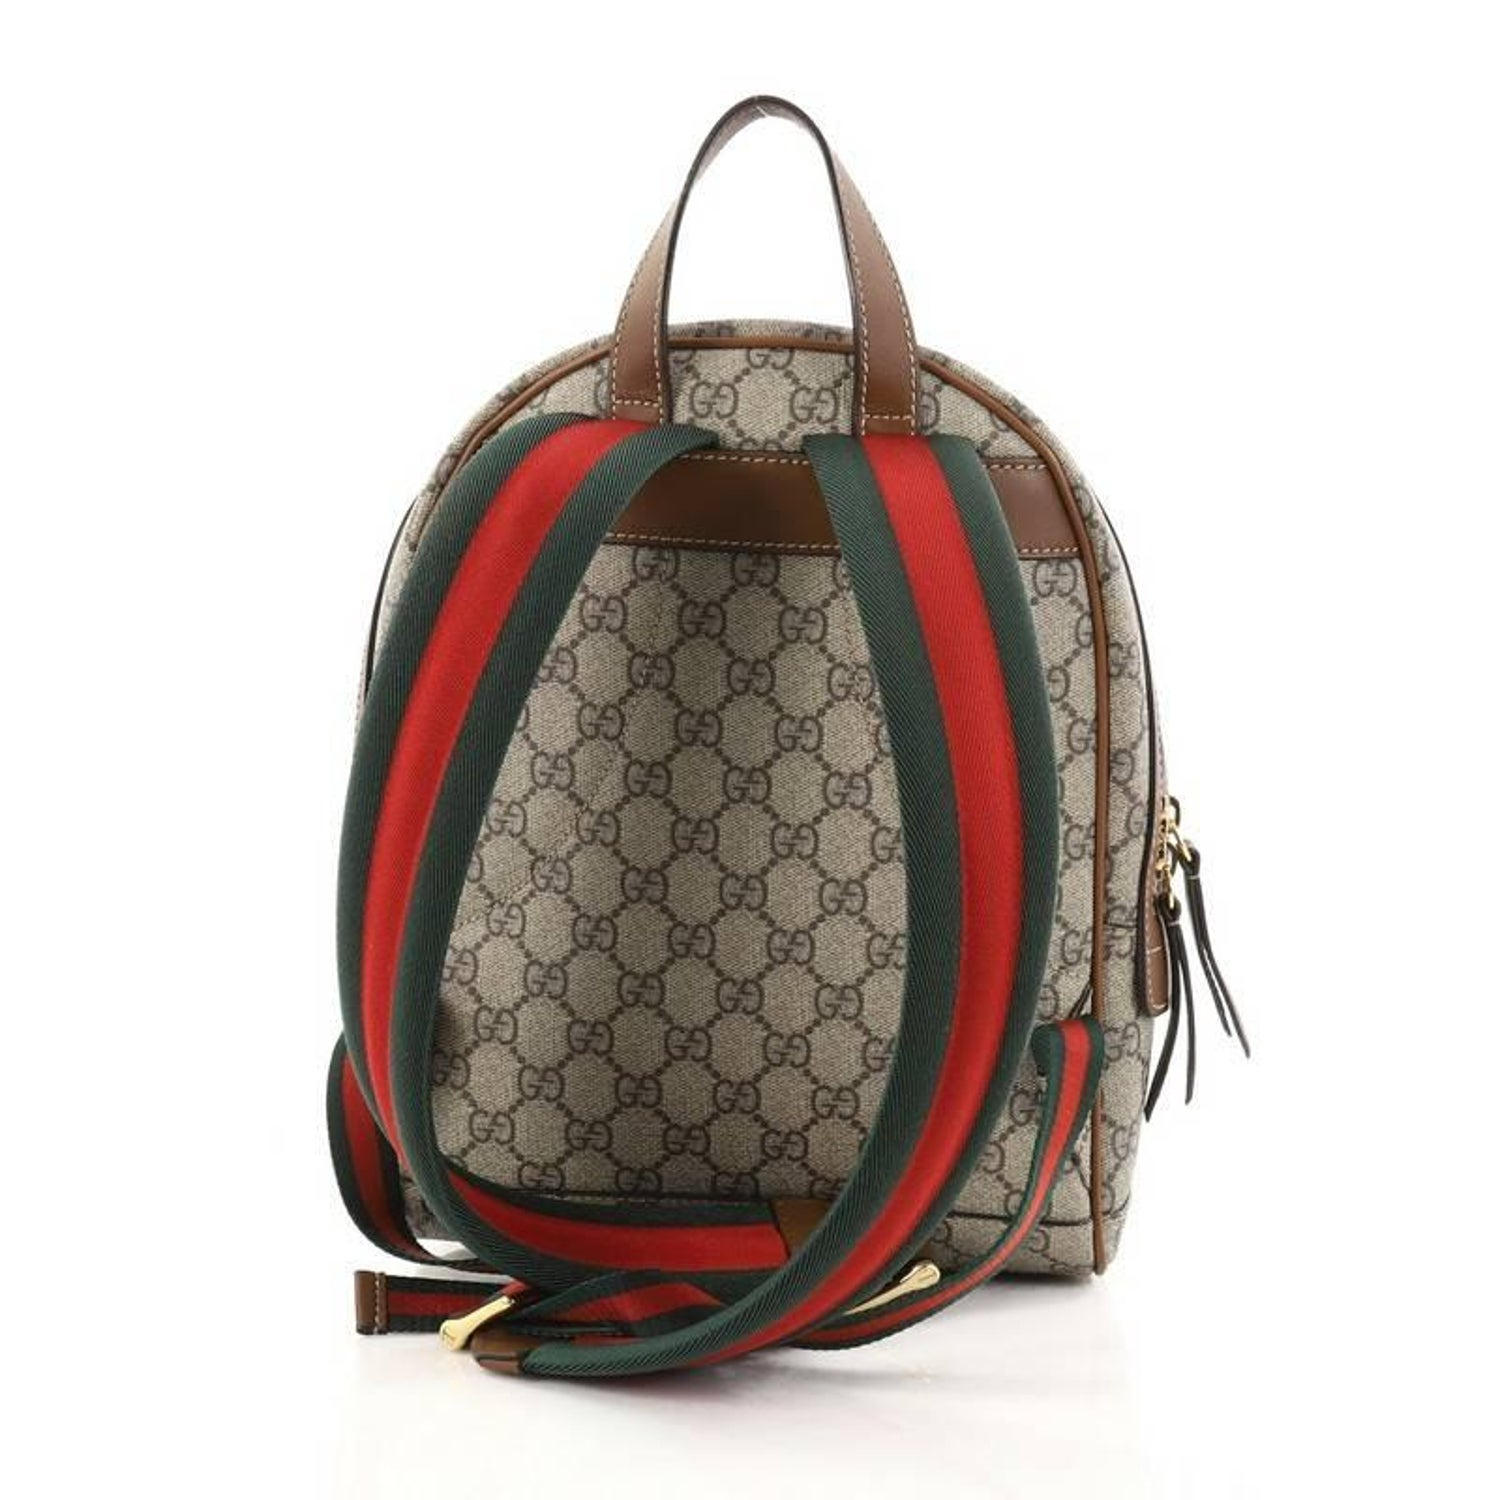 82640ec11e27 Gucci Zip Pocket Backpack Embroidered GG Coated Canvas Small at 1stdibs